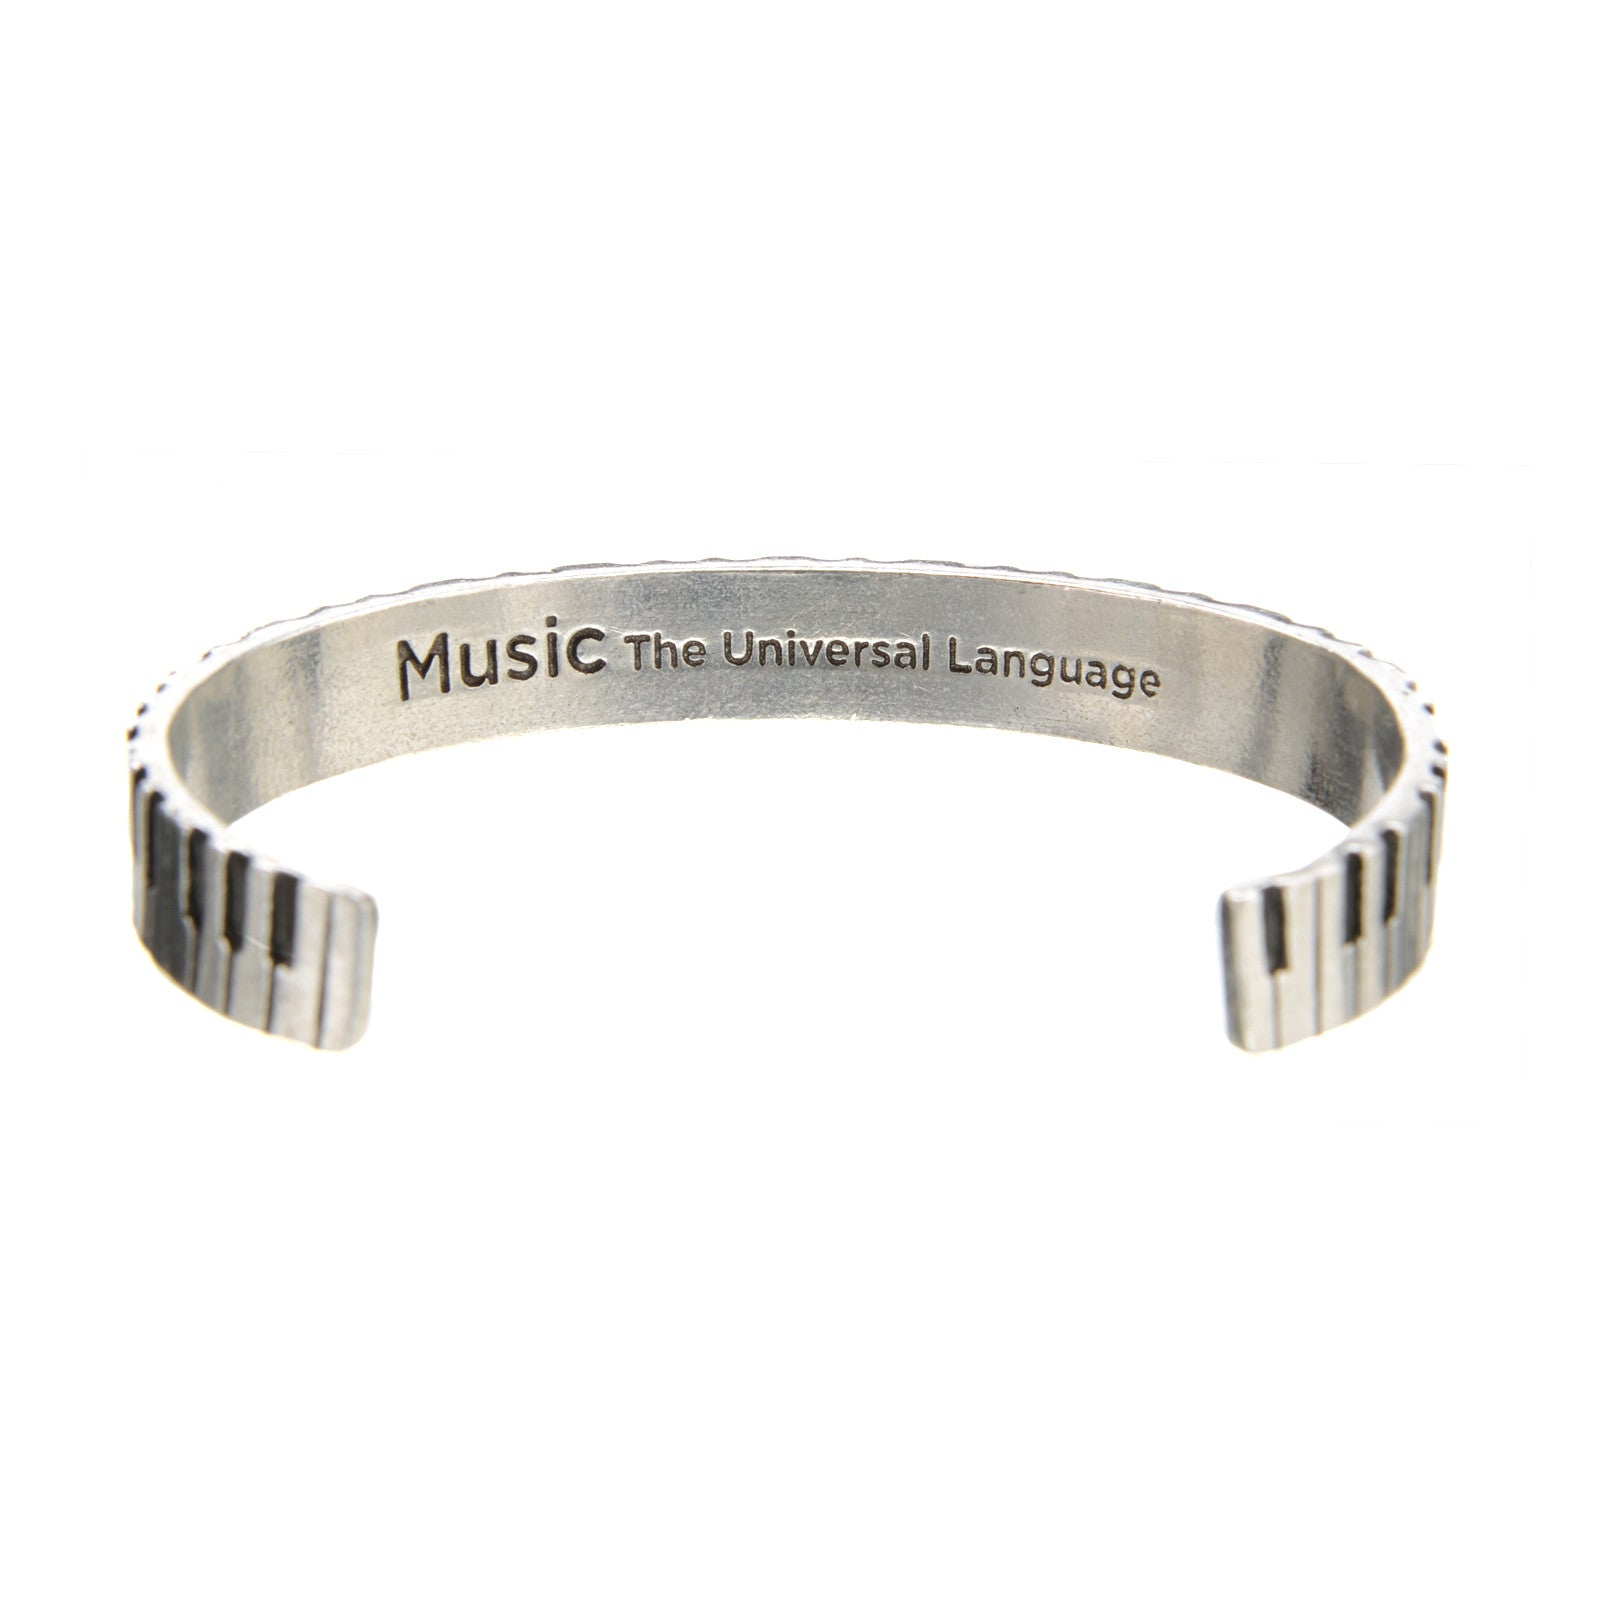 Piano Cuff Inspirational Jewelry Bracelet - Great Gift for Teachers, Musicians, and Music Students By Quotable Cuffs - Whitney Howard Designs